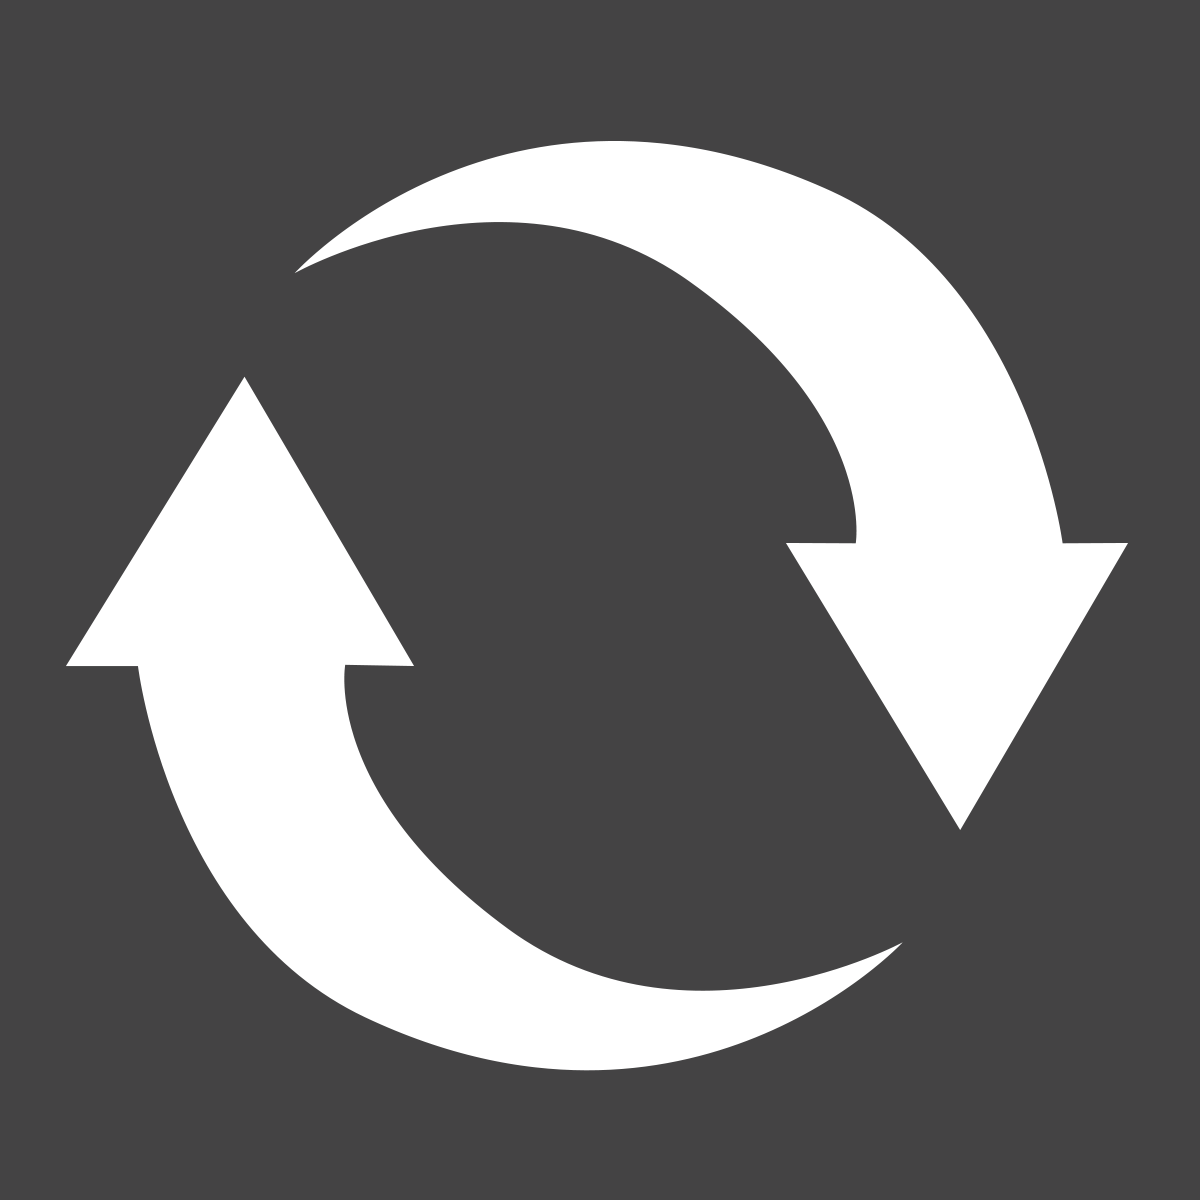 Recycle designation icon